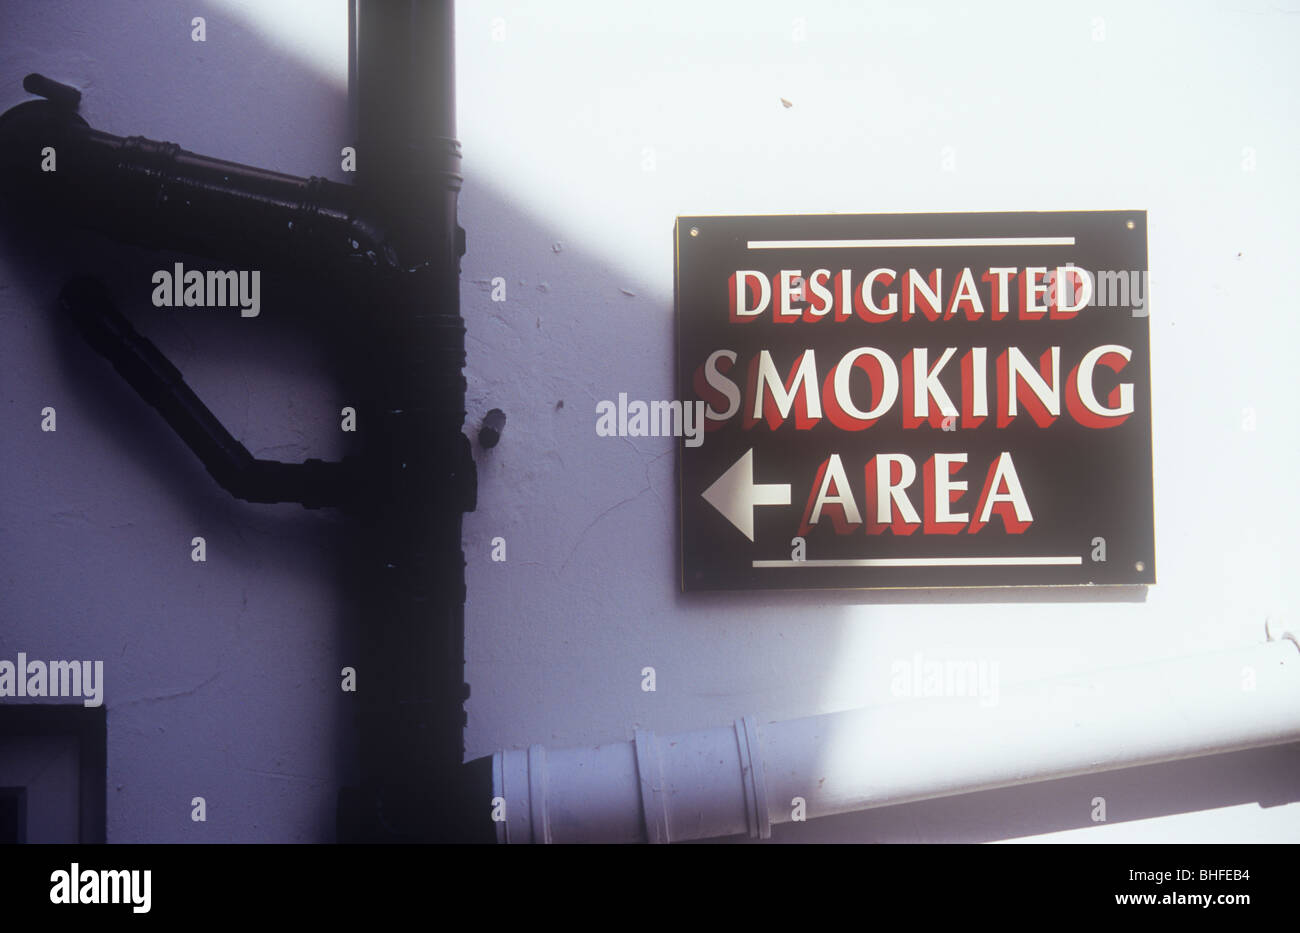 Sign on white wall surrounded by drainpipes stating with a direction arrow Designated Smoking Area - Stock Image